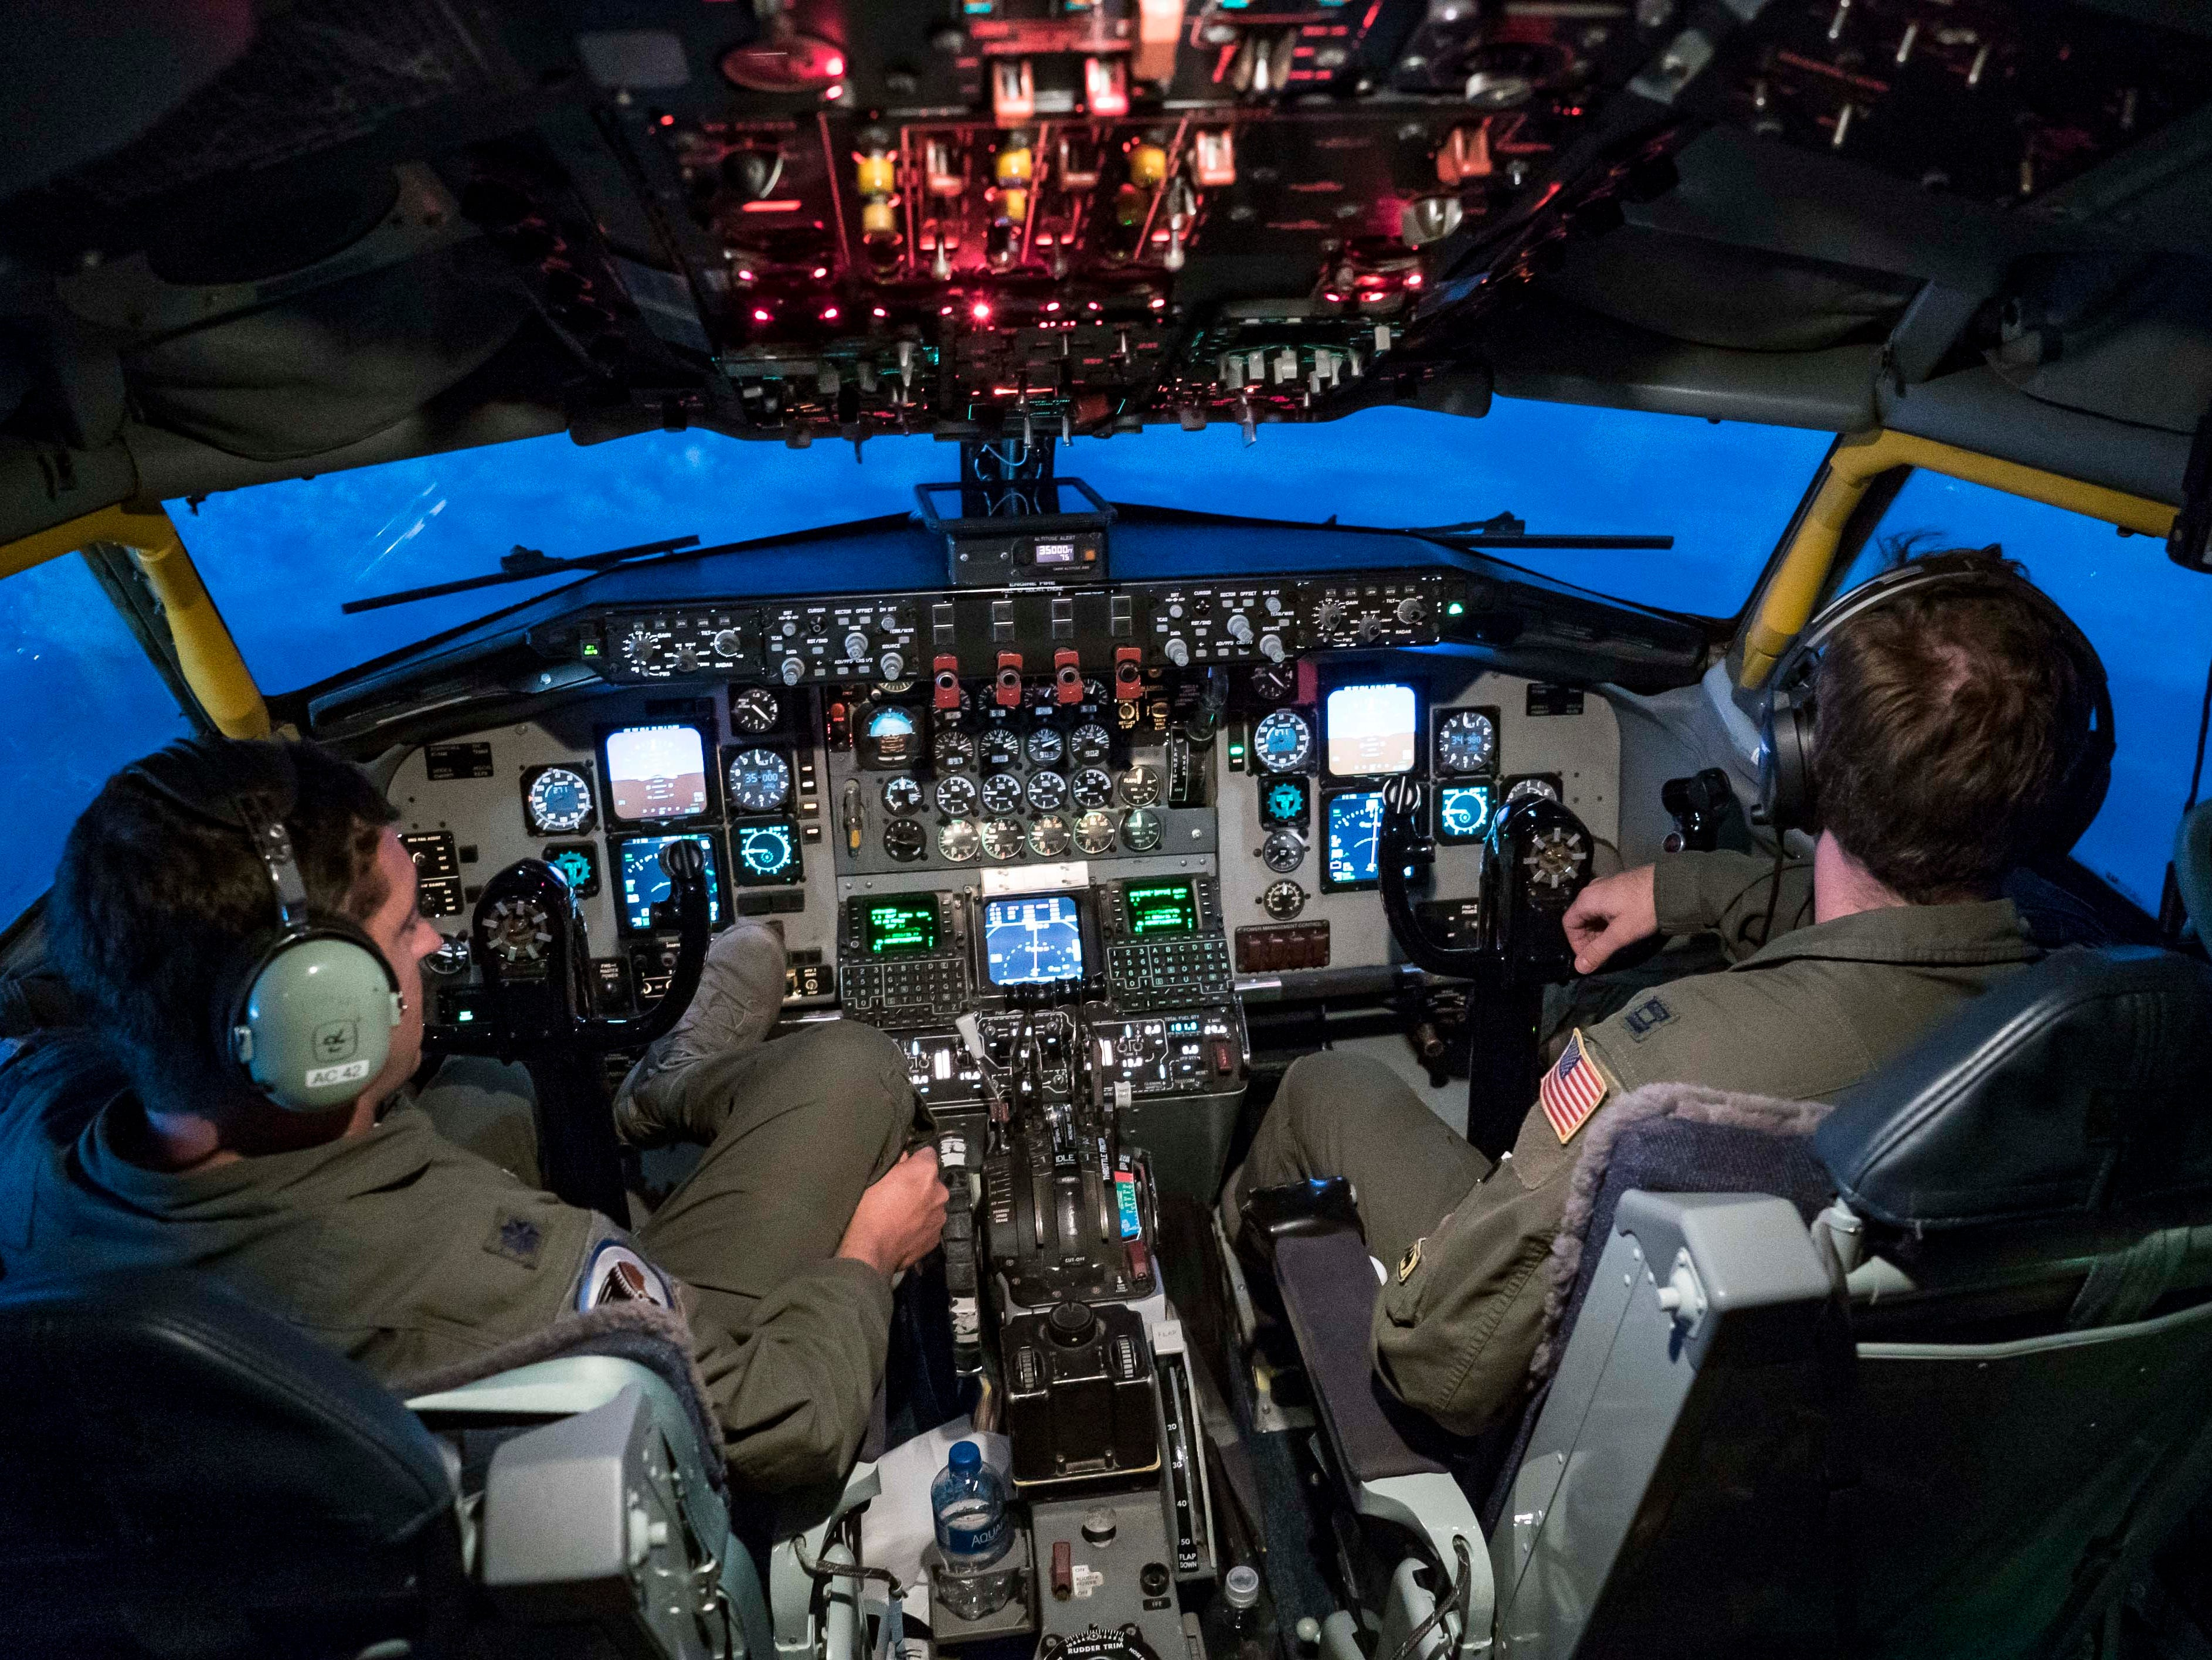 We left Des Moines with the Iowa National Guard flying to Kosovo, Sept. 16, 2018, in a KC-135E Stratotanker on the 10-hour flight.